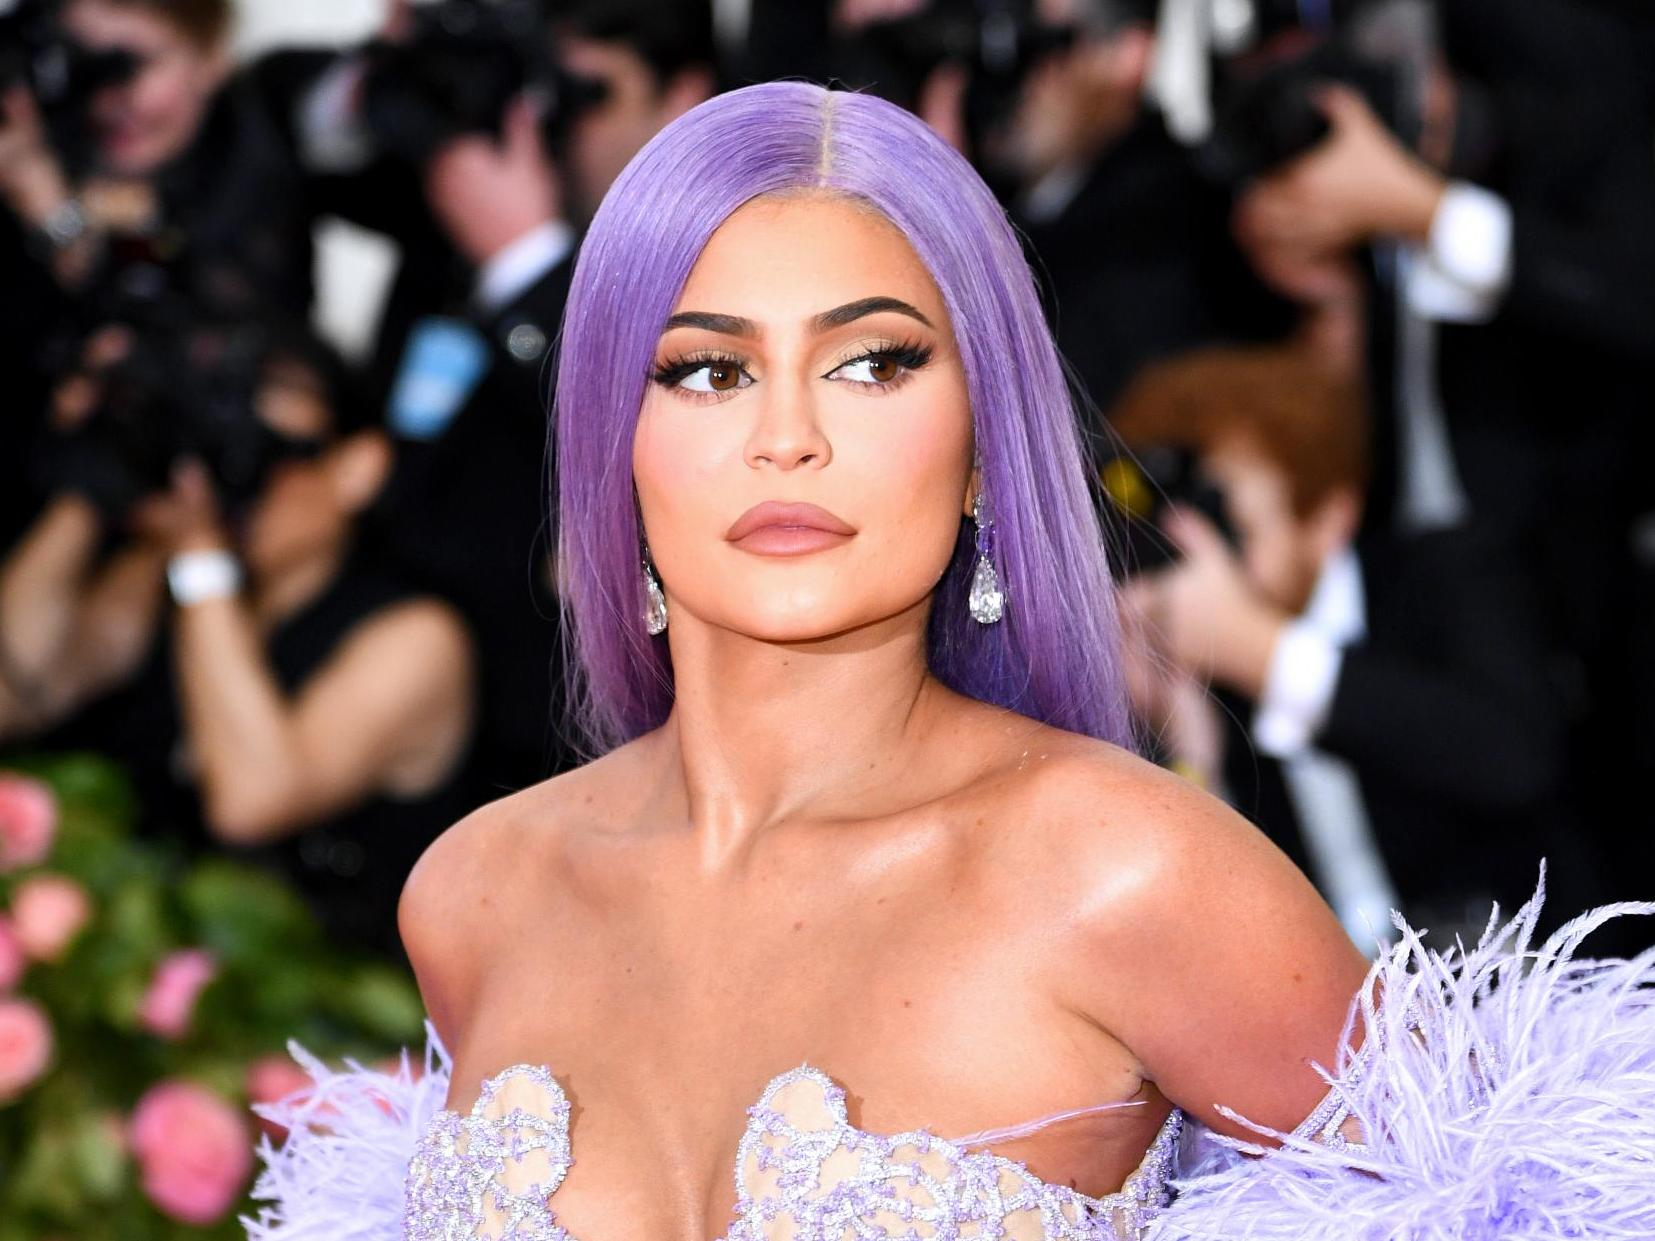 Kylie Jenner says Forbes controversy over her billionaire status is 'literally the last thing' she's worried about